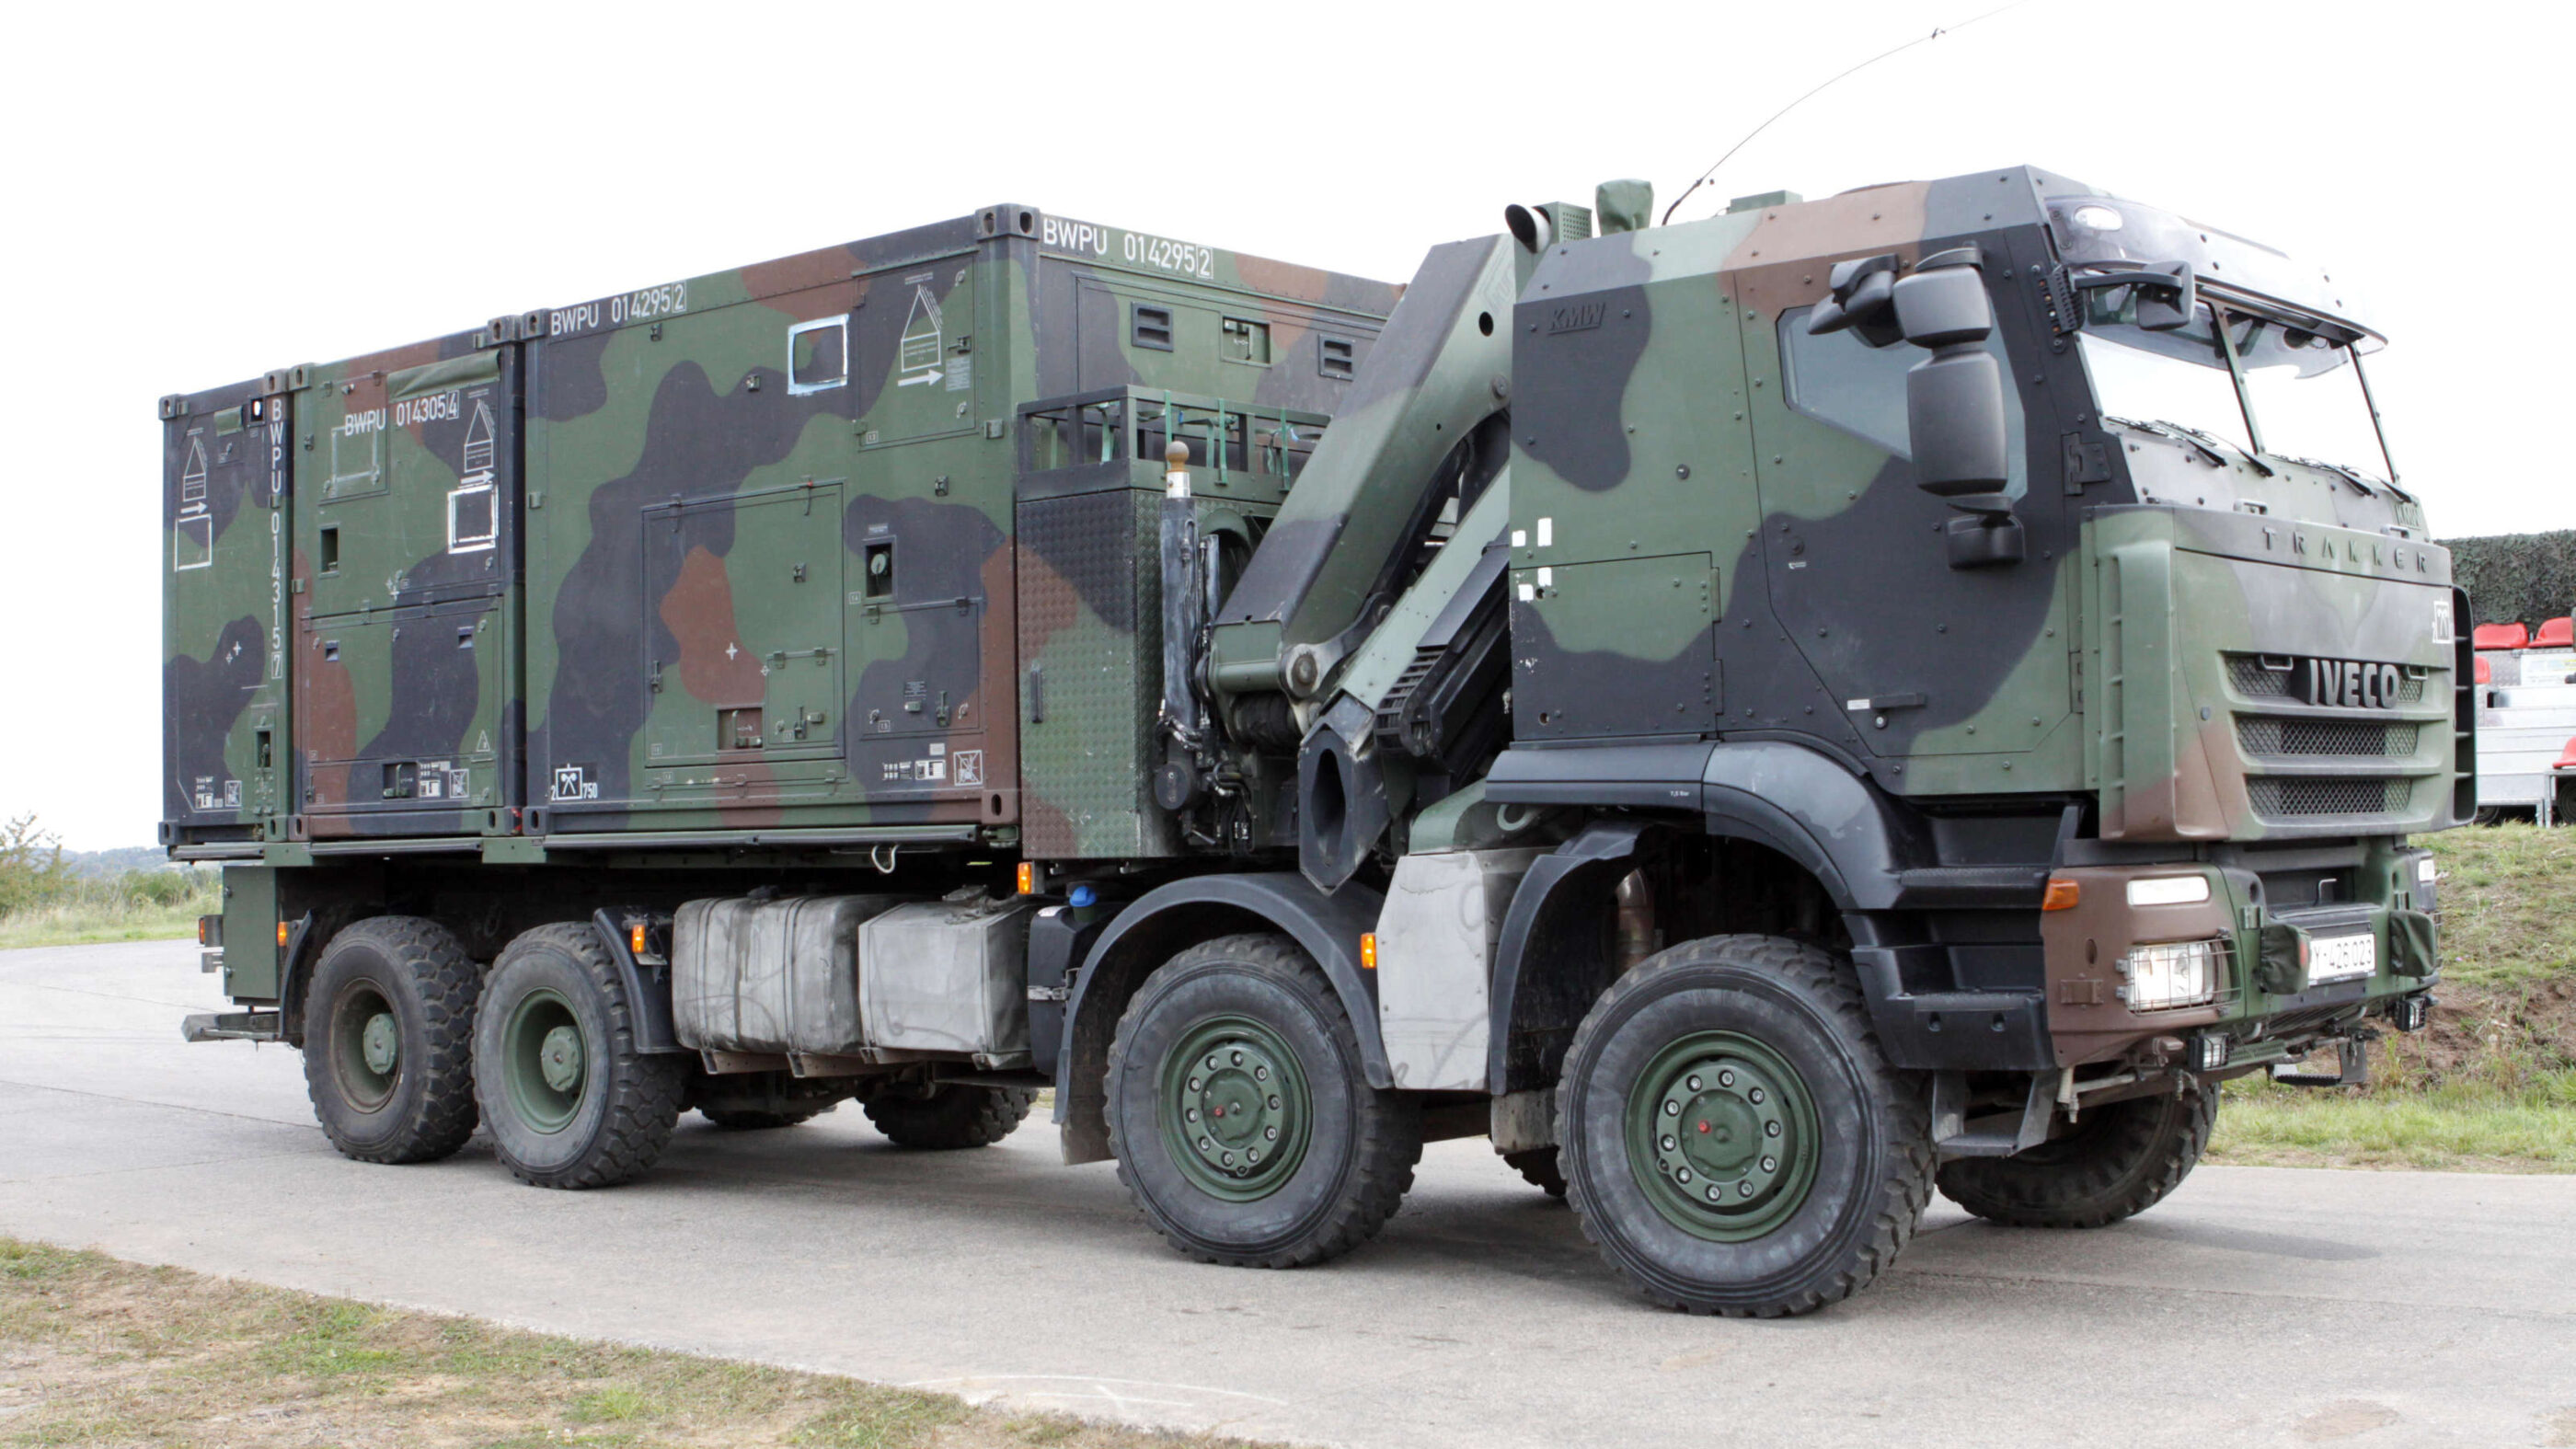 German Bundeswehr awards contract to Iveco for 1048 military trucks